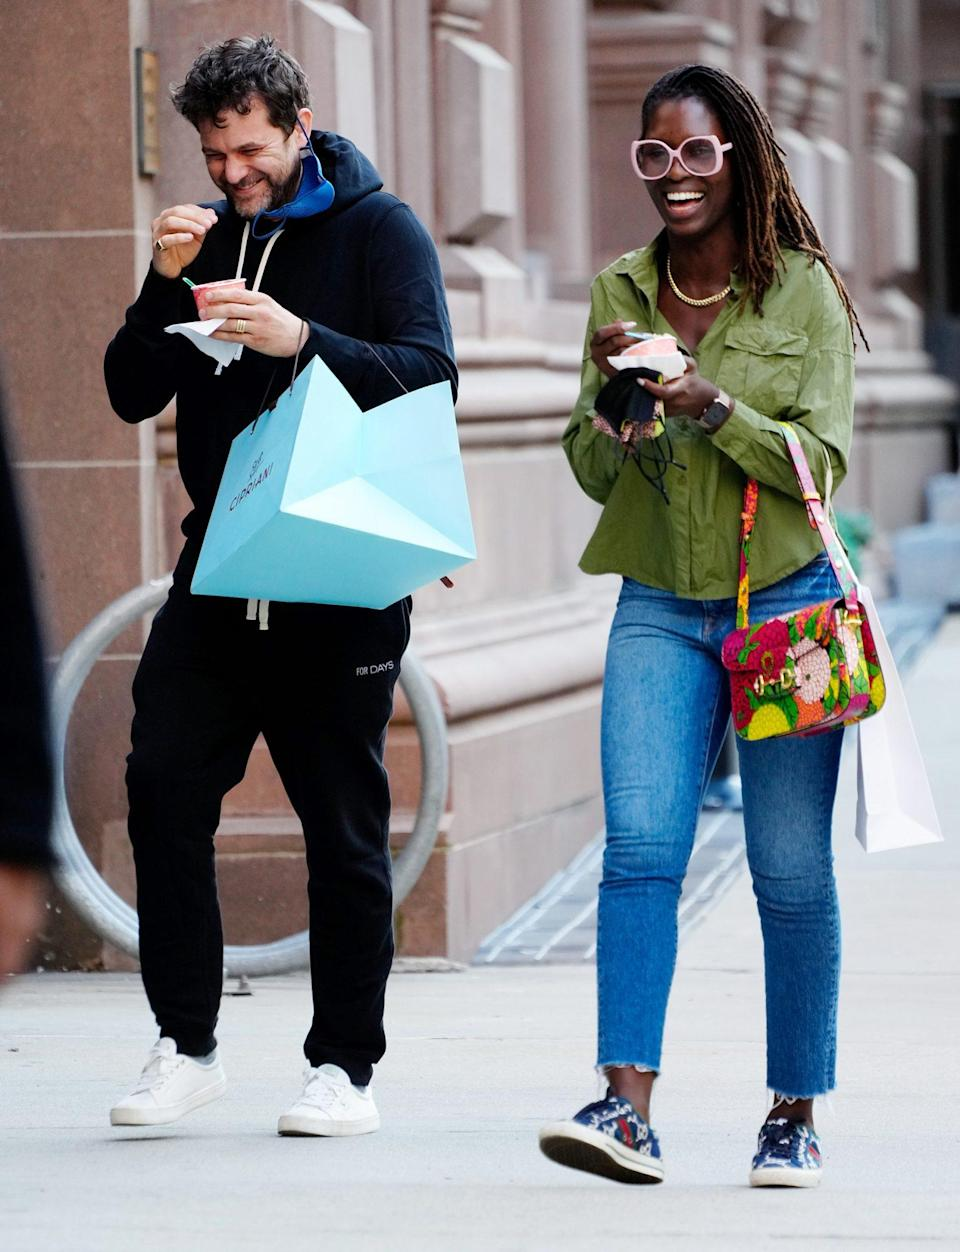 <p>Joshua Jackson and Jodie Turner-Smith share a laugh and a sweet treat on Monday in N.Y.C.</p>